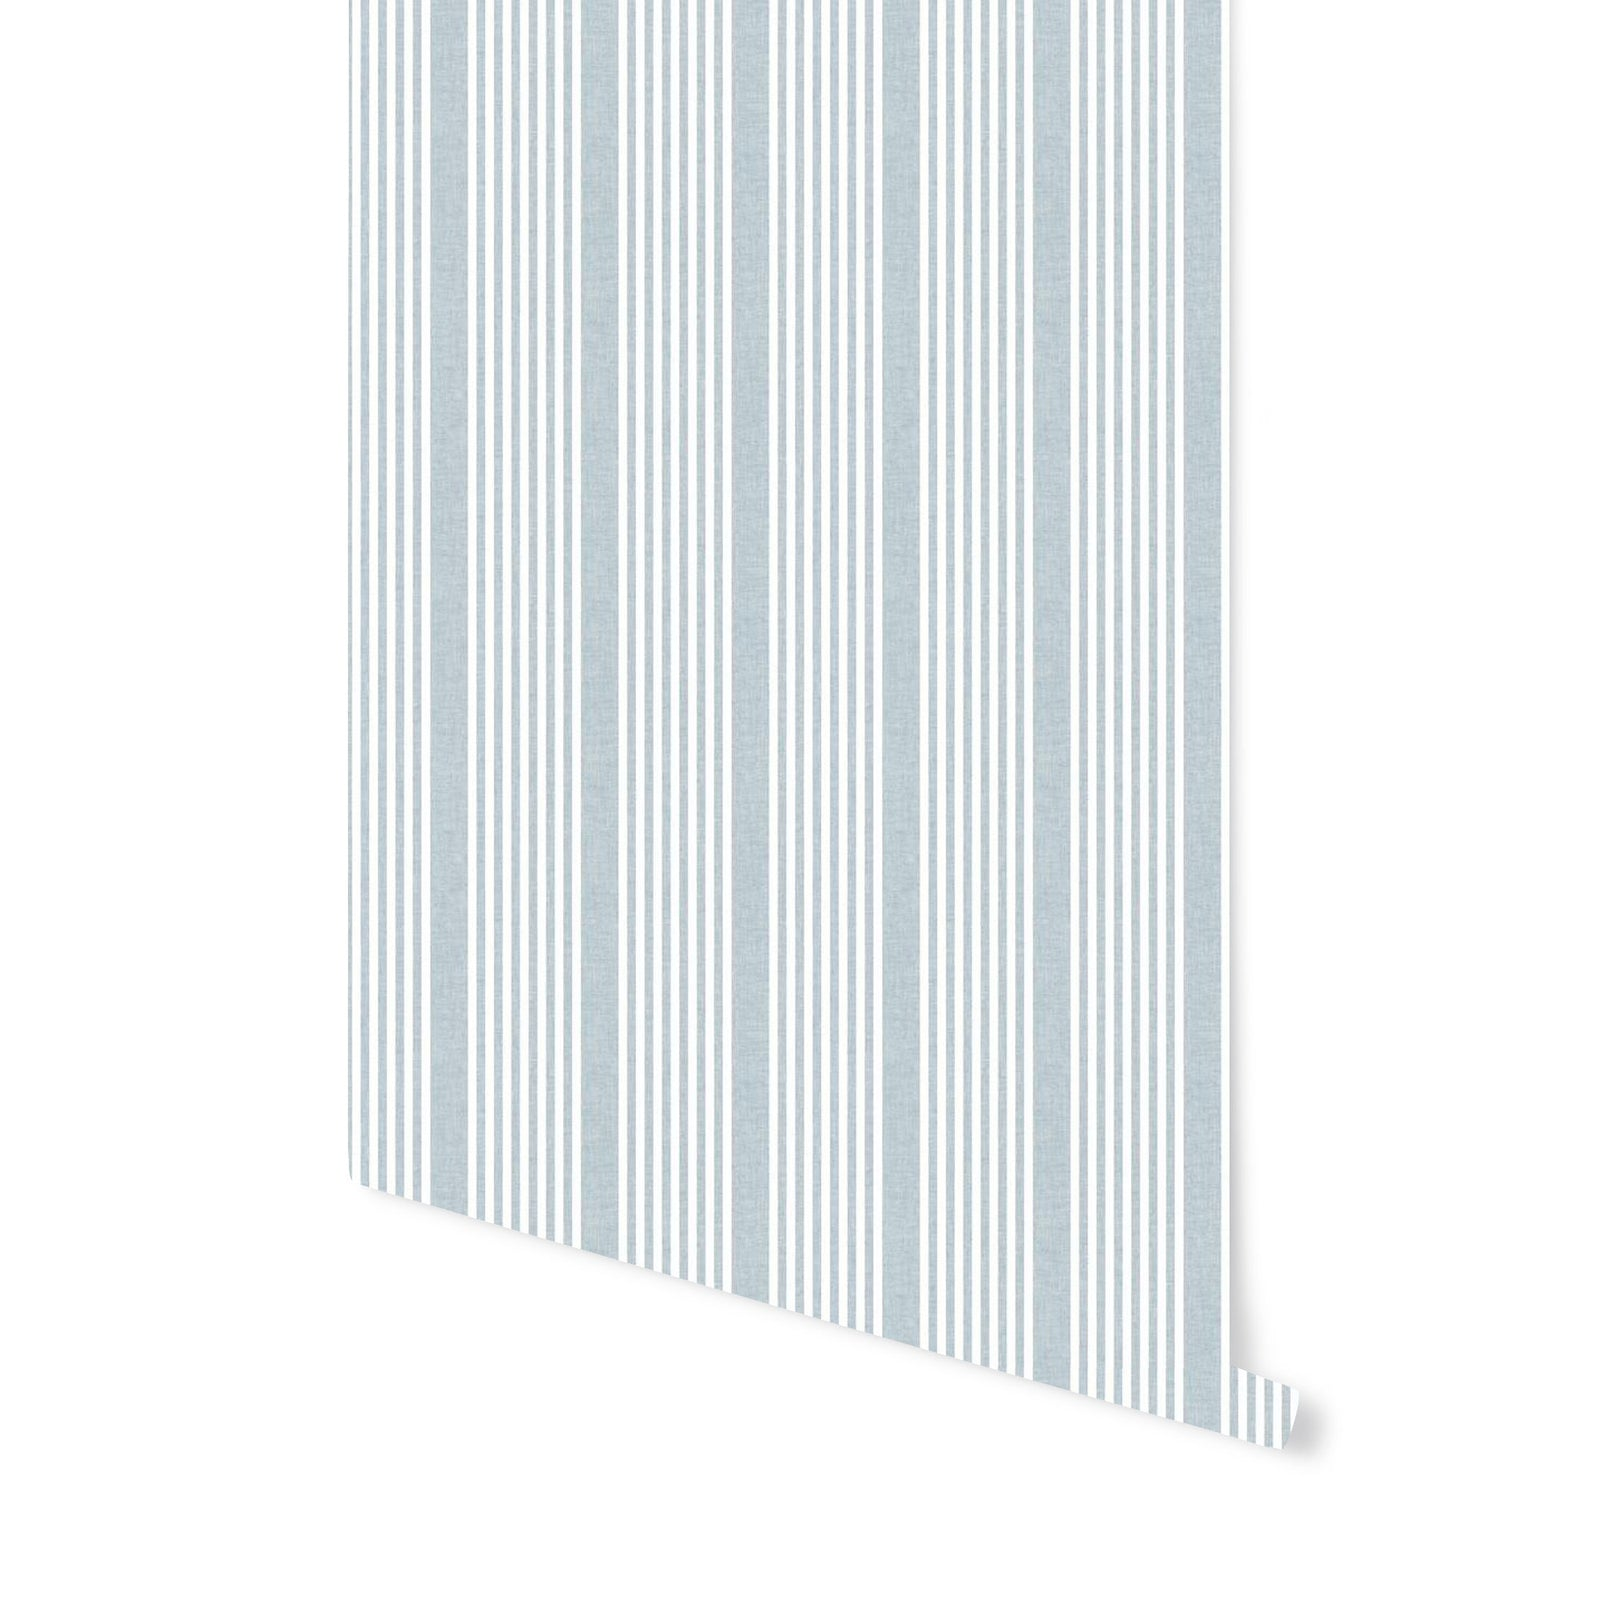 French Stripe Wallpaper in Blue